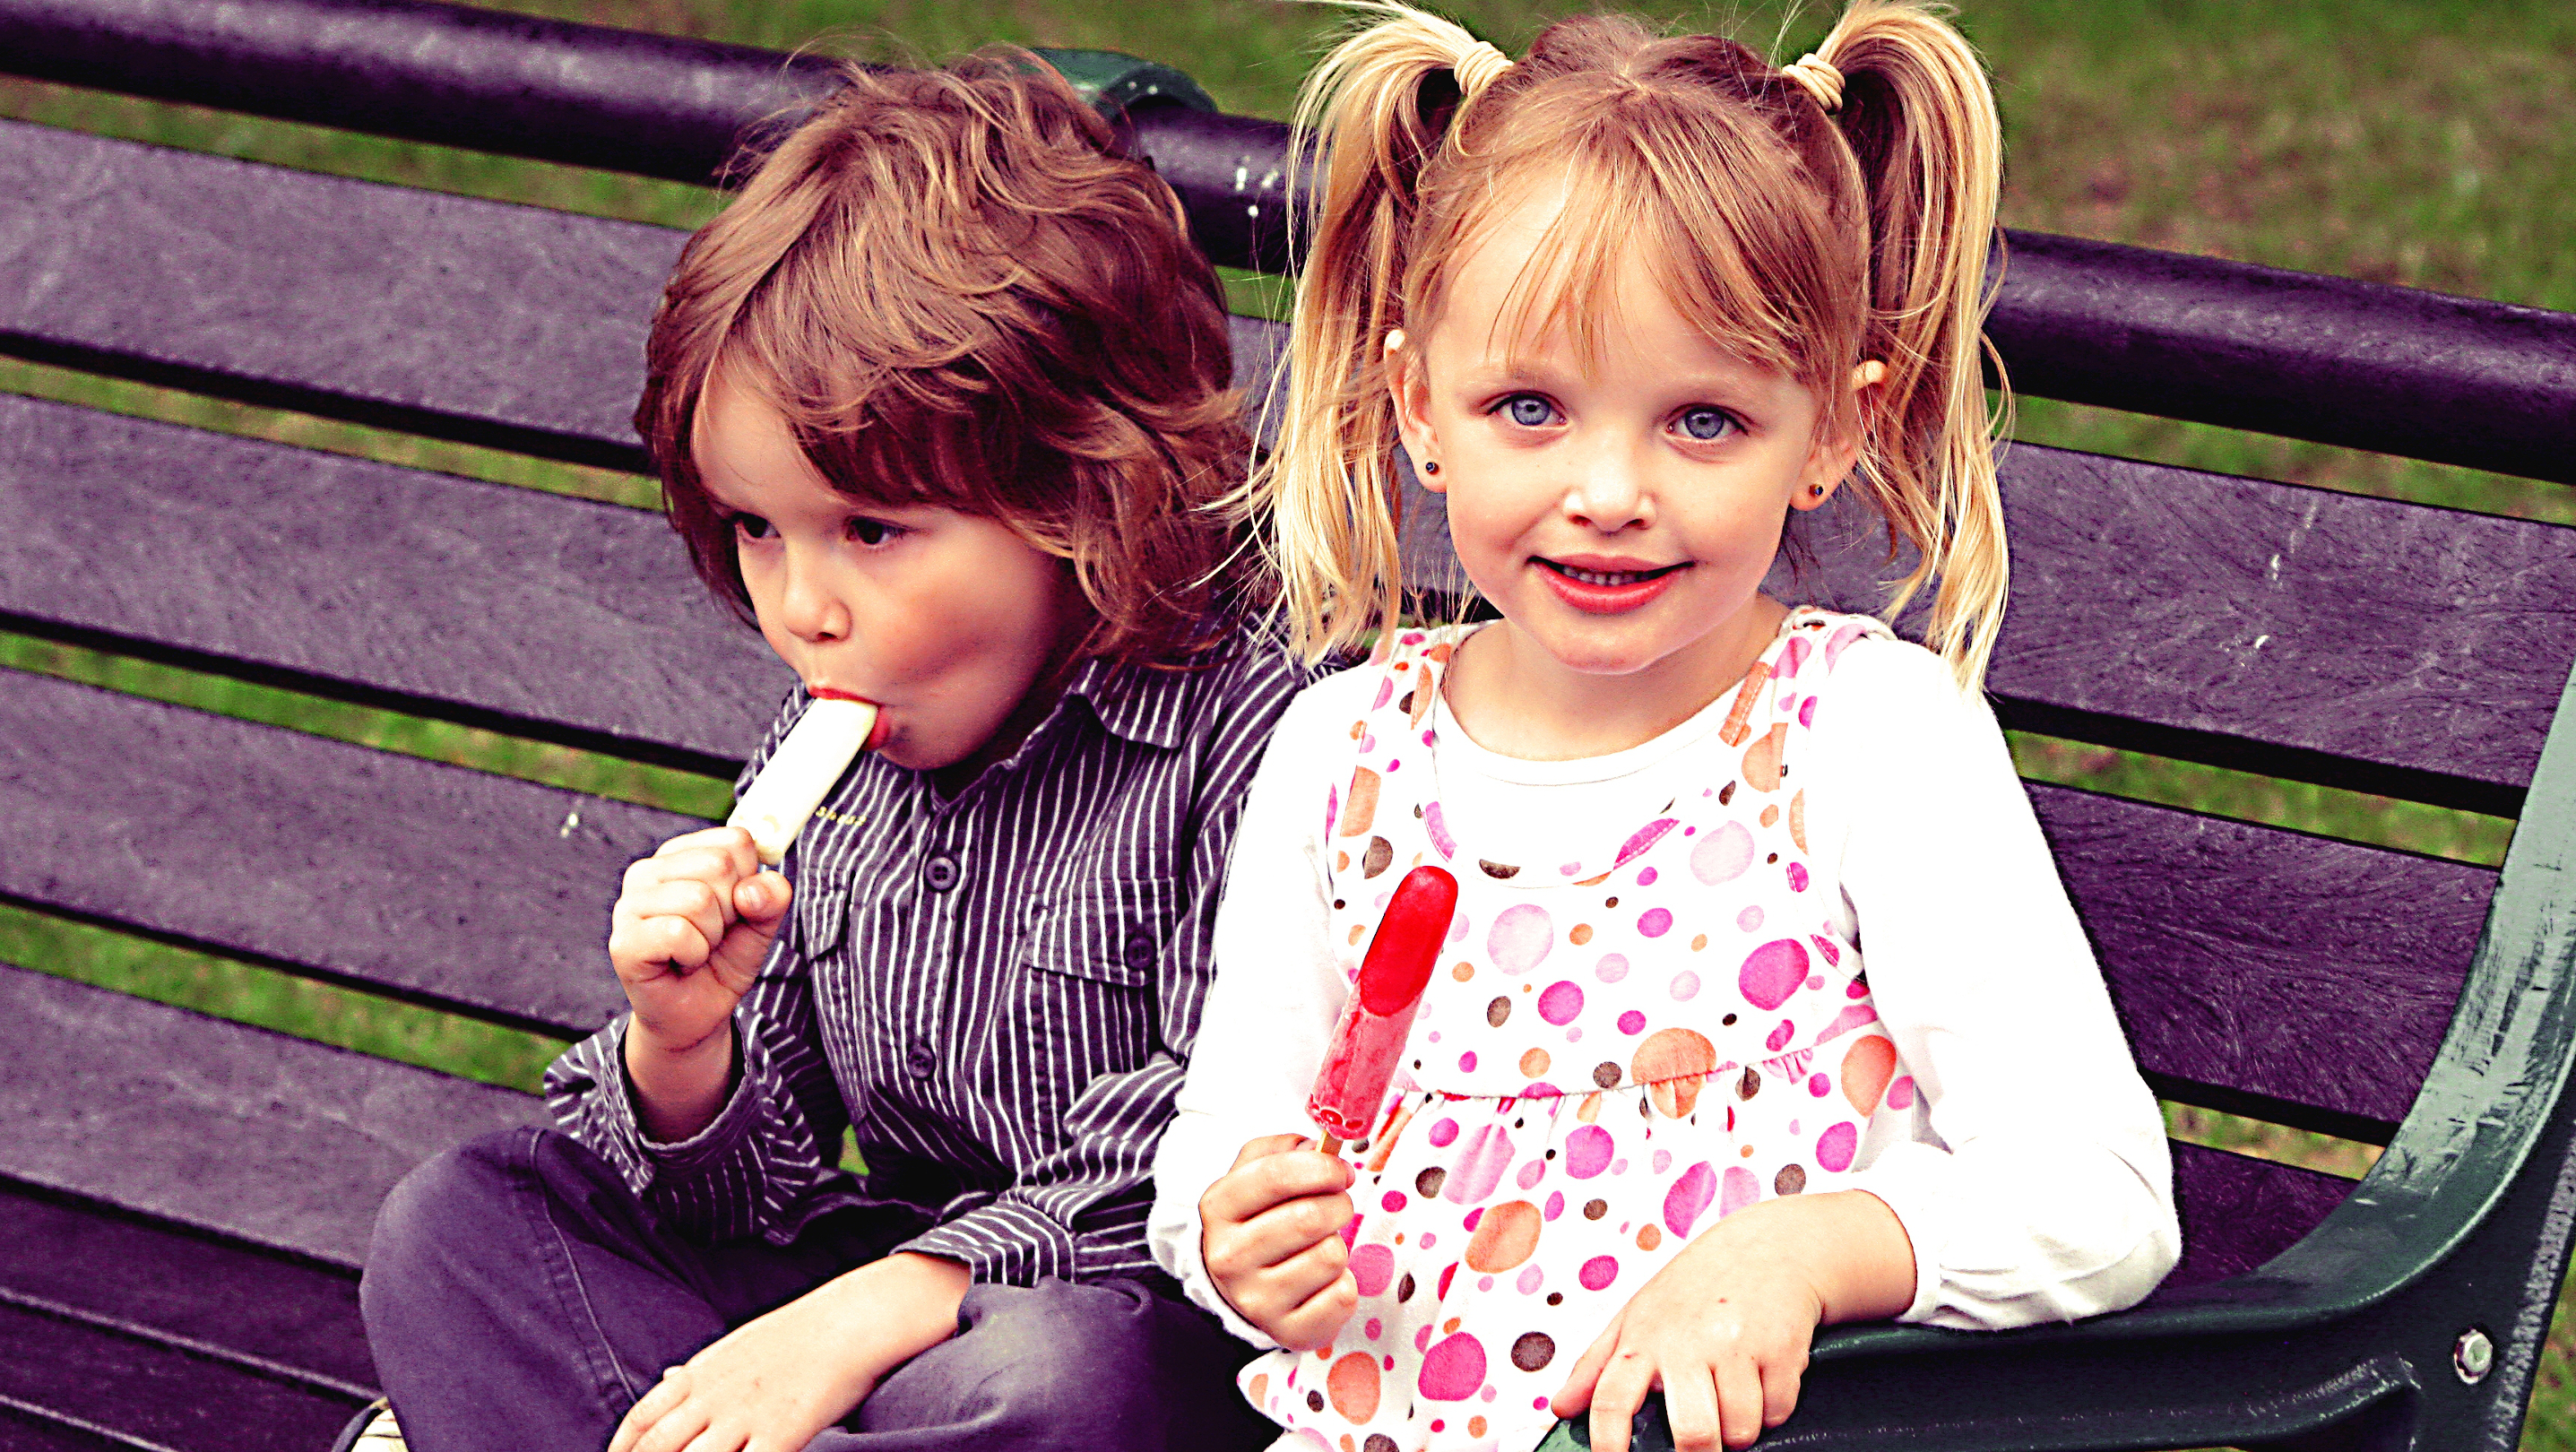 Brother and sister eating lollies. Photo by Emy Lou Photography